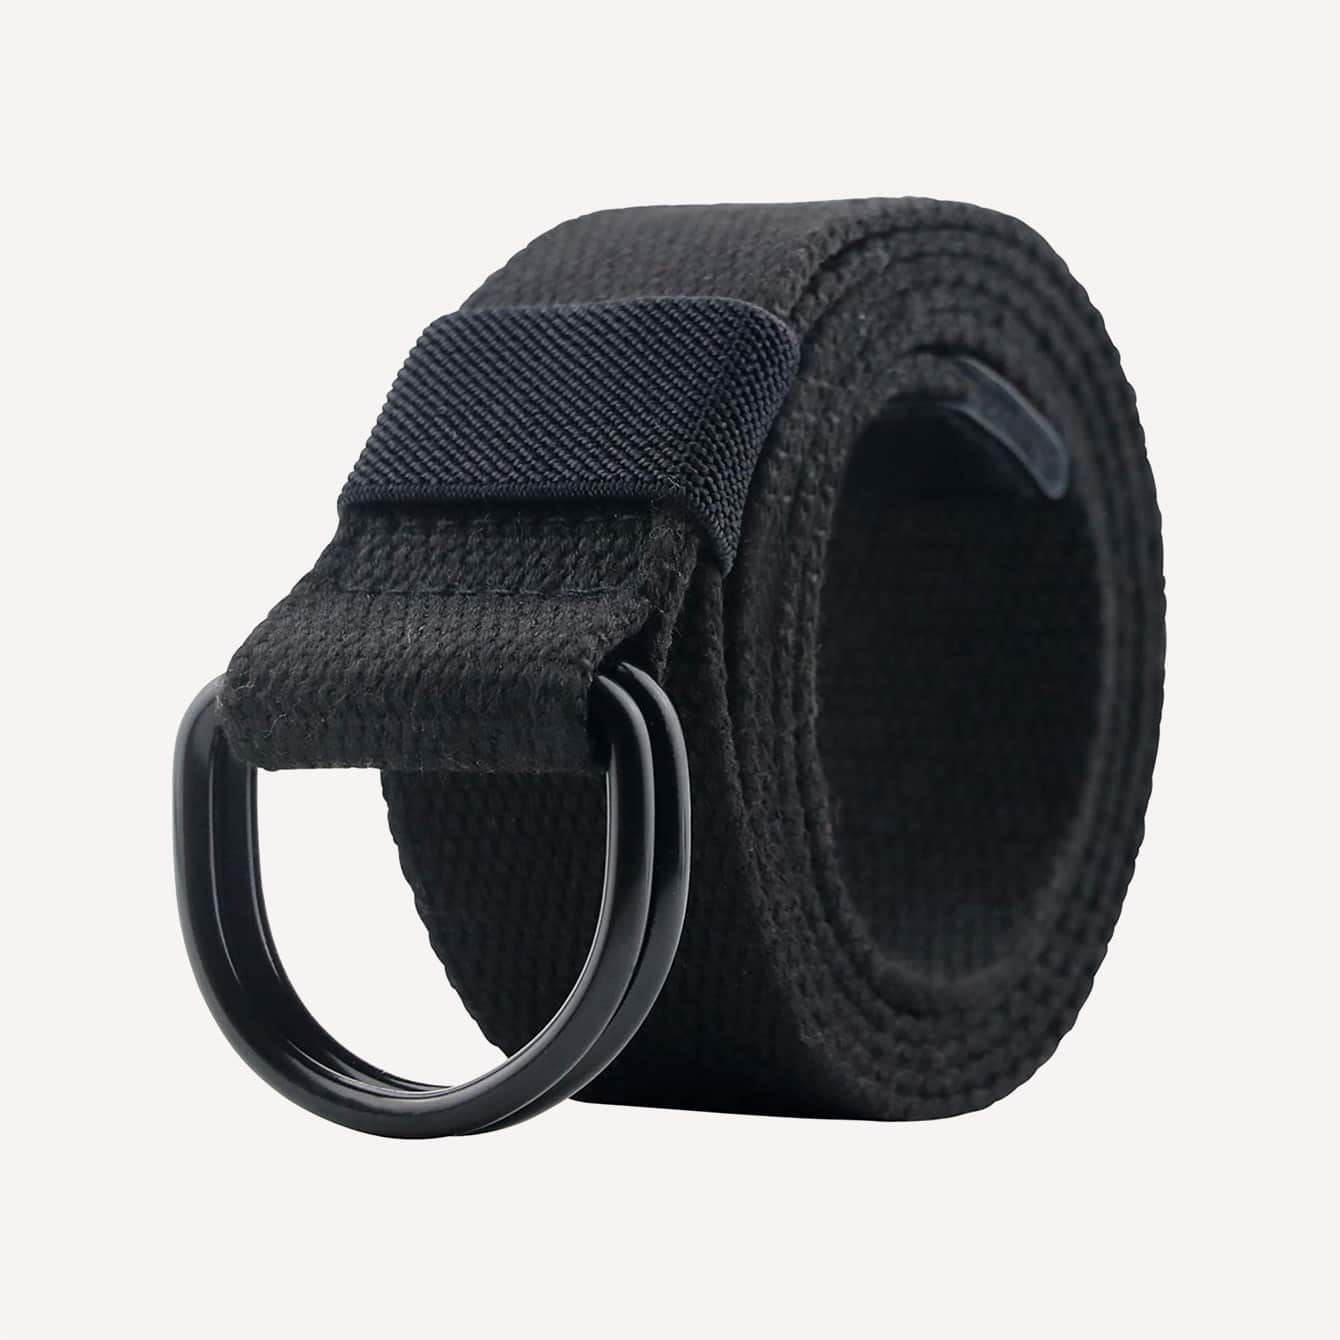 maikun Canvas Belt for Men and Women with Black D Ring